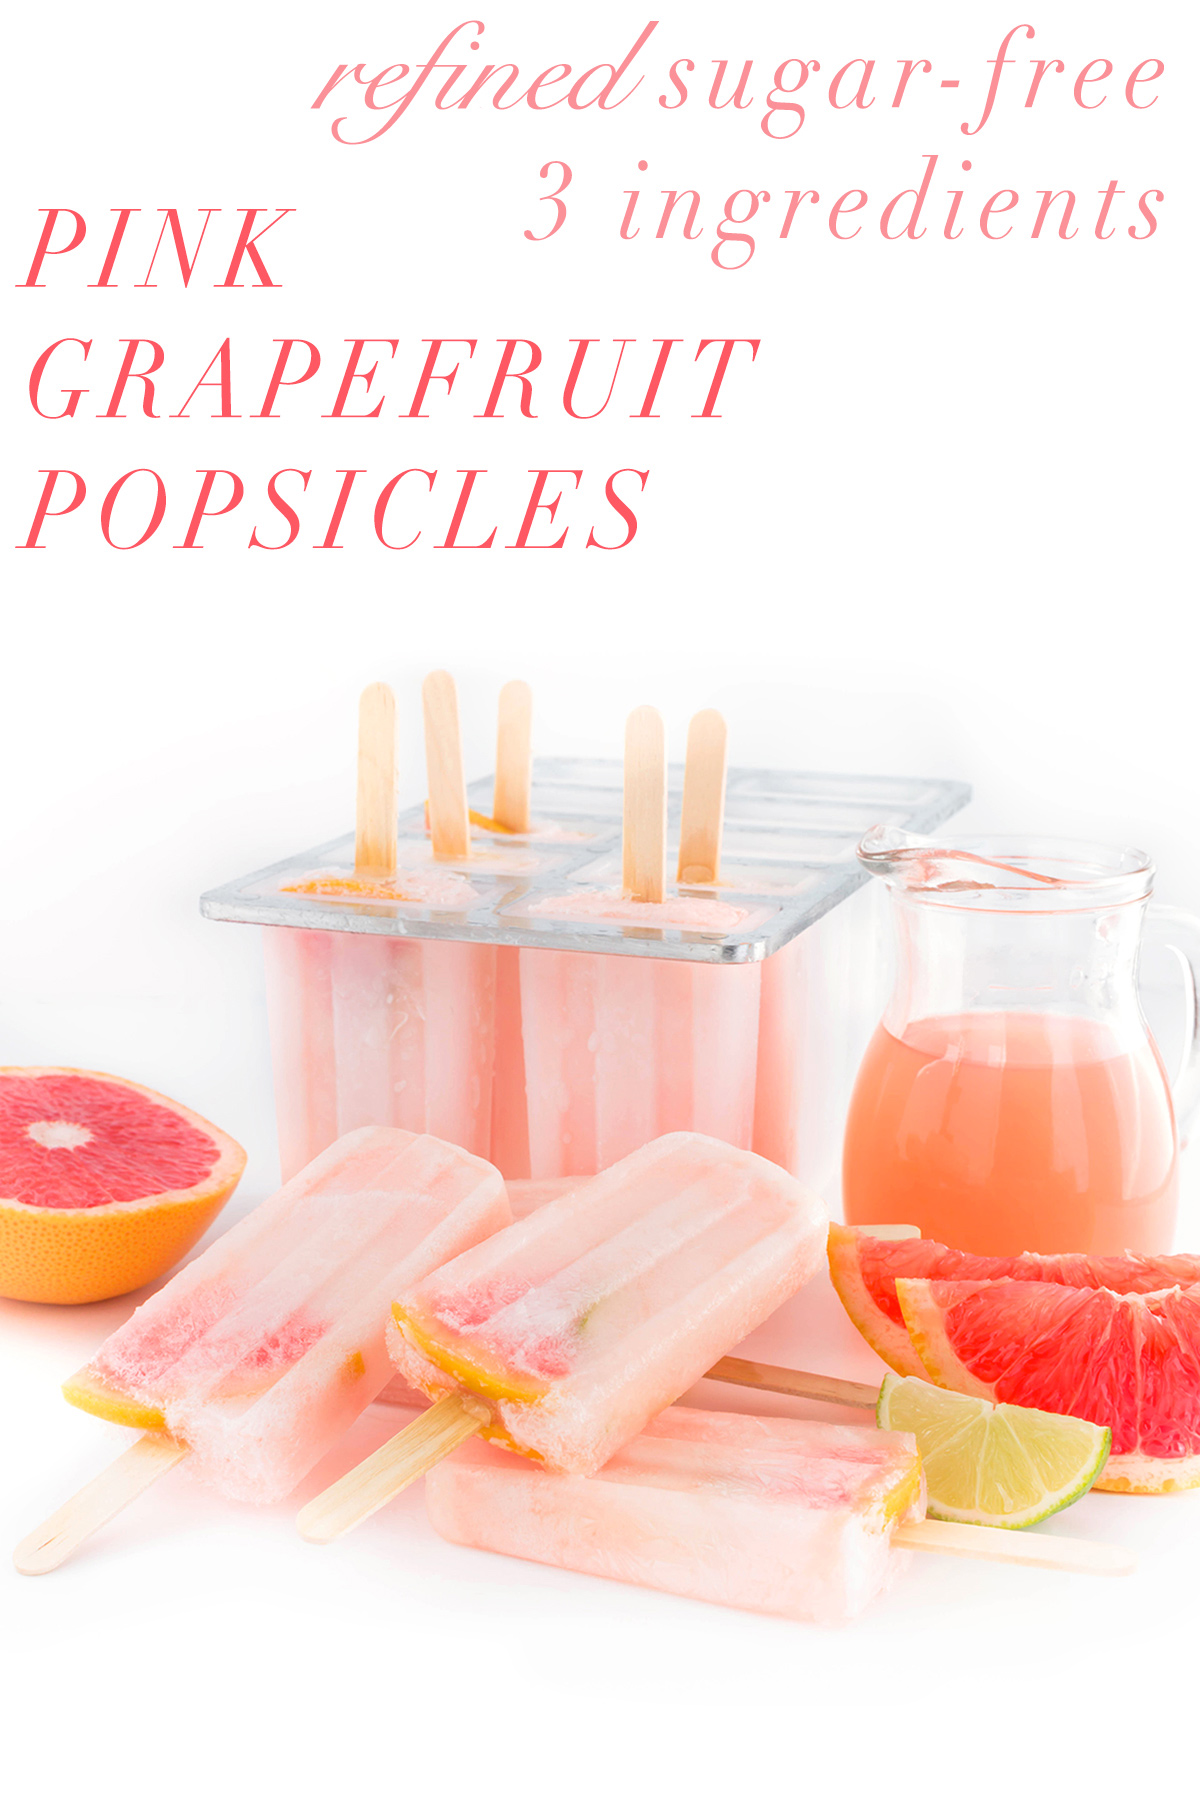 healthy refined sugar free 3 ingredients pink GRAPEFRUIT POPSICLES recipe - GHIACCIOLI al POPMELMO ROSA 3 ingredienti ricetta senza zucchero raffinato